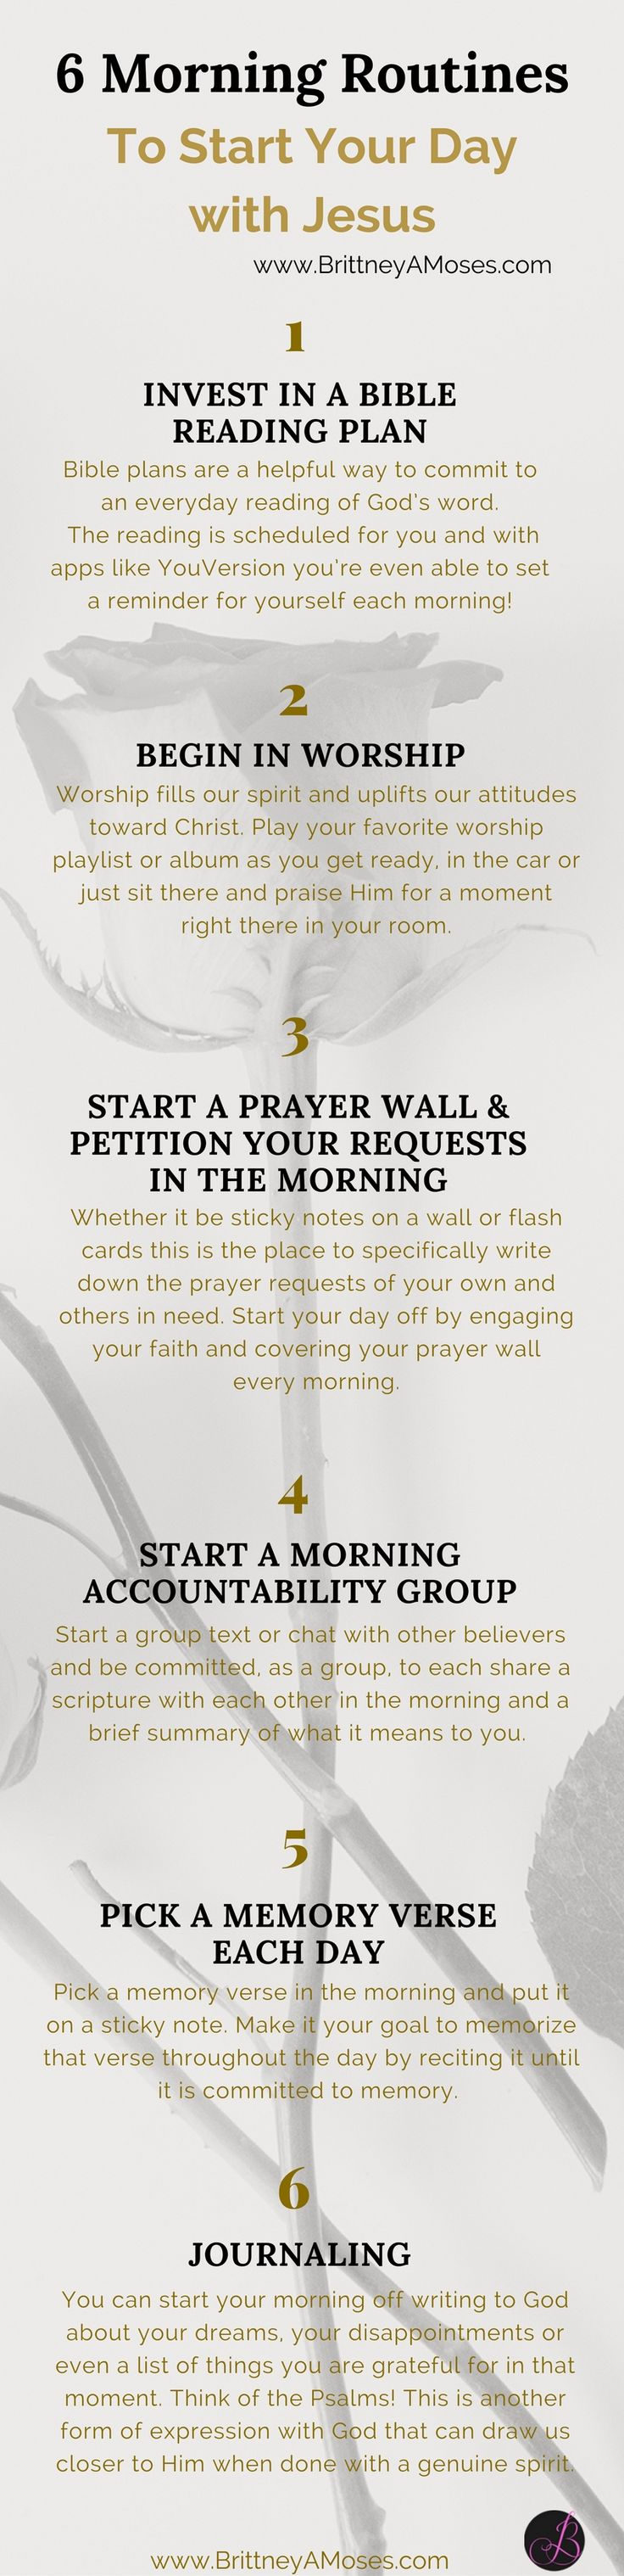 "READ: ""10 Morning Routines to Start Your Day with Jesus"" -Brittney Moses"